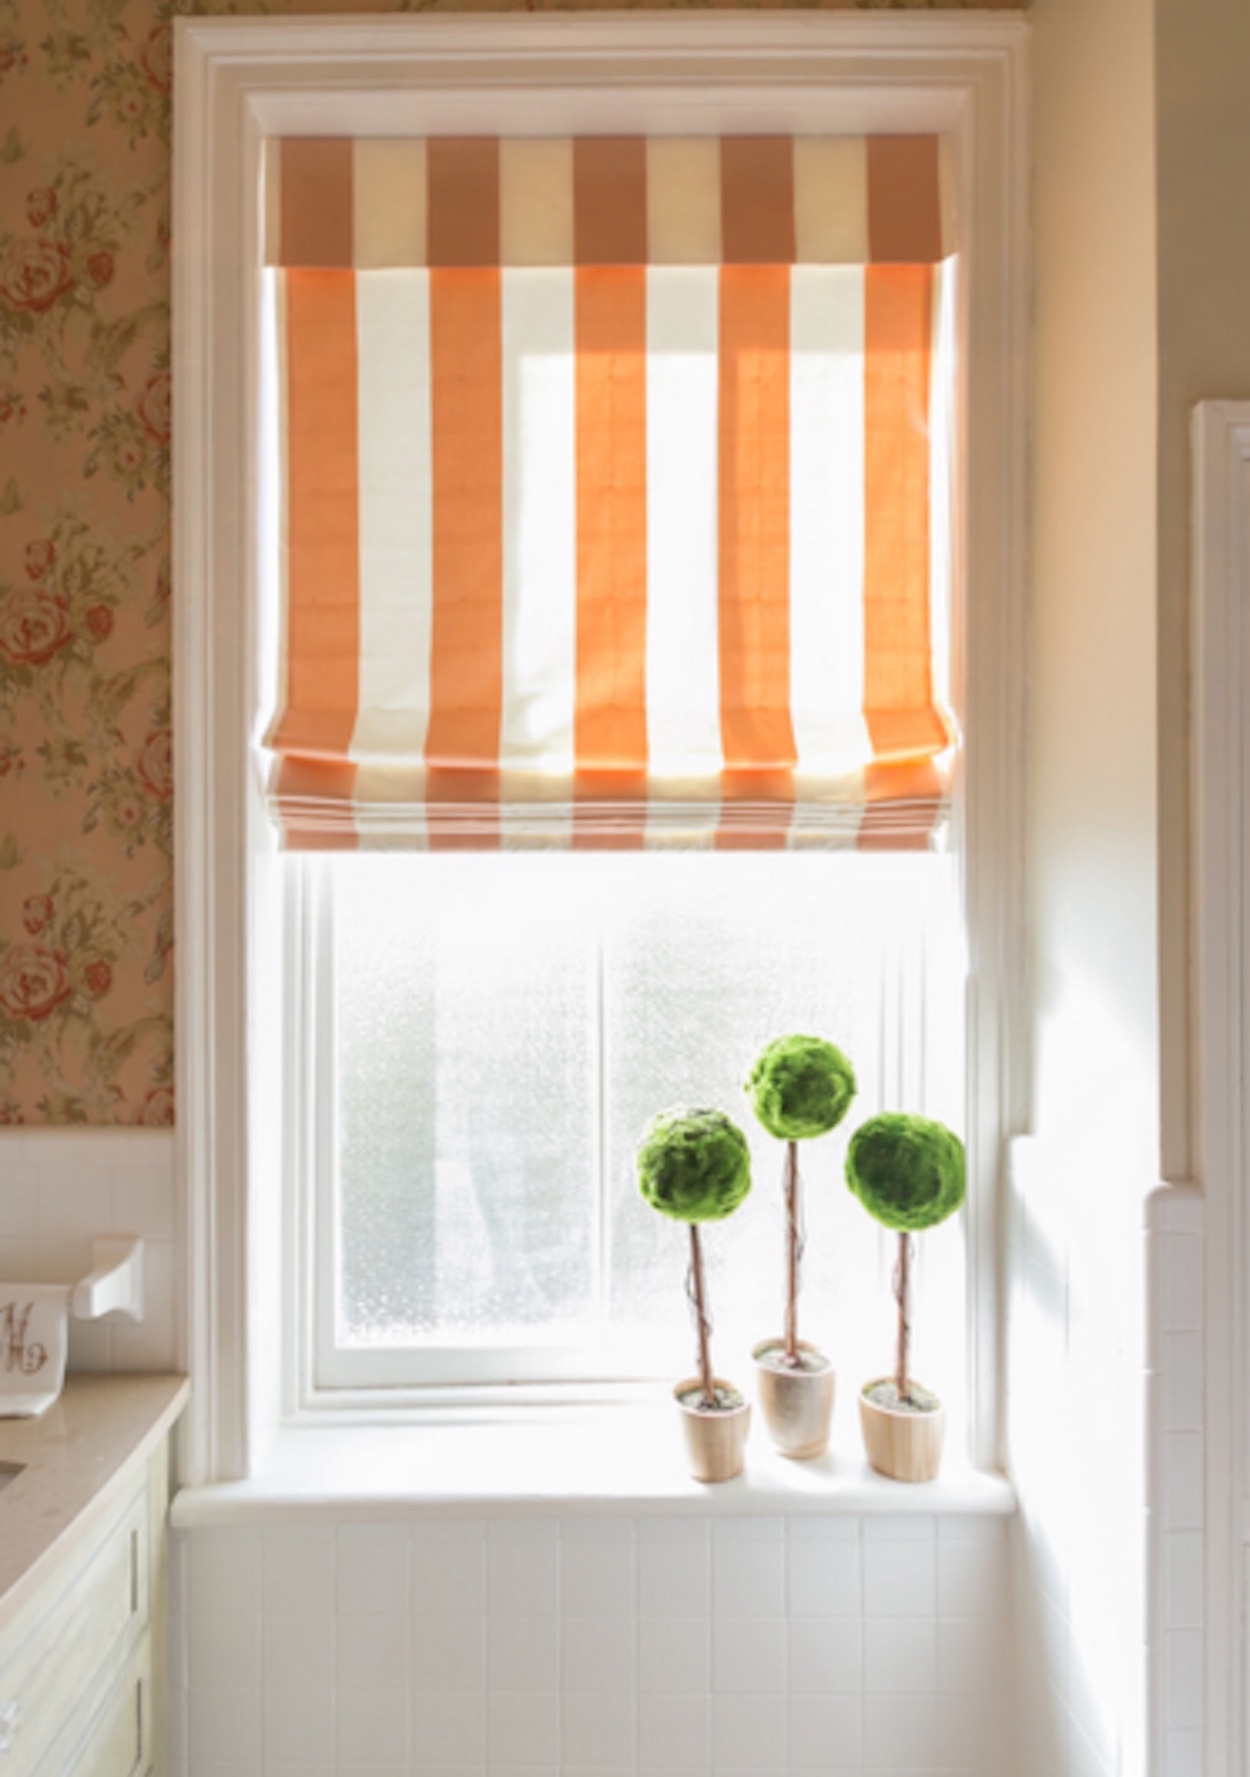 7 Diffe Bathroom Window Treatments You Might Not Have